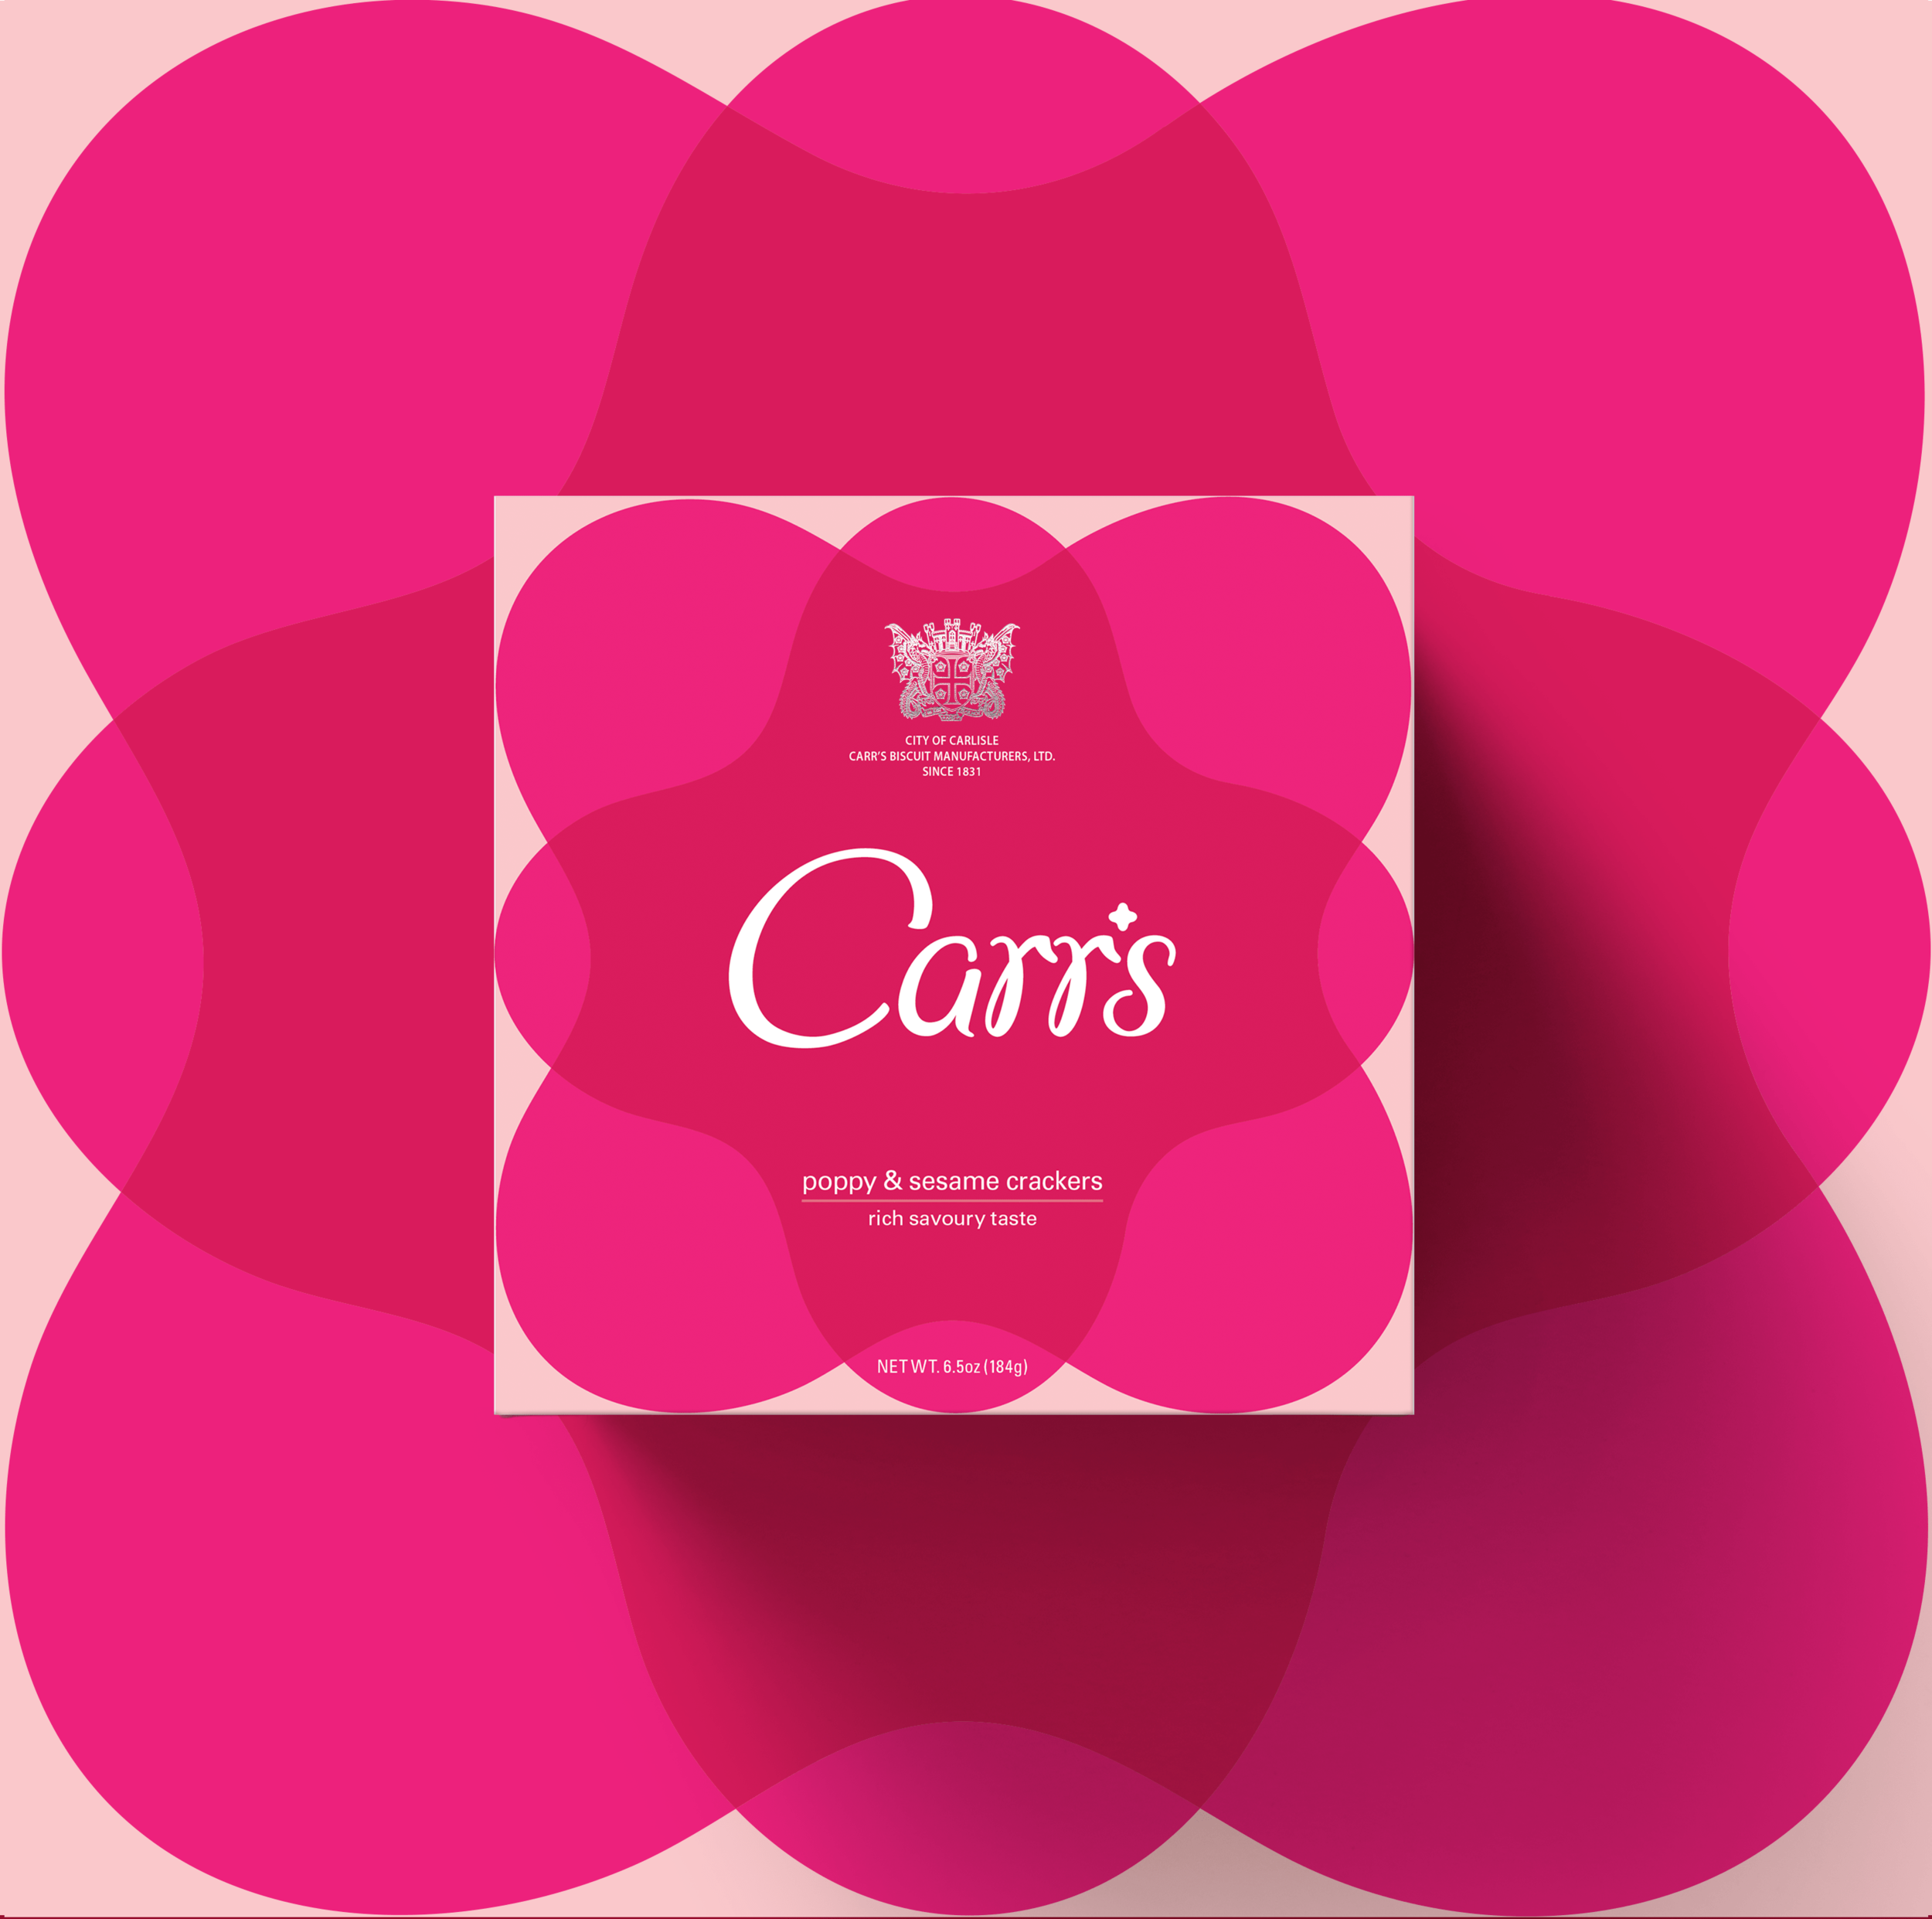 Redesign-Carr's-Biscuits-Redesign-poppy-seasame.png